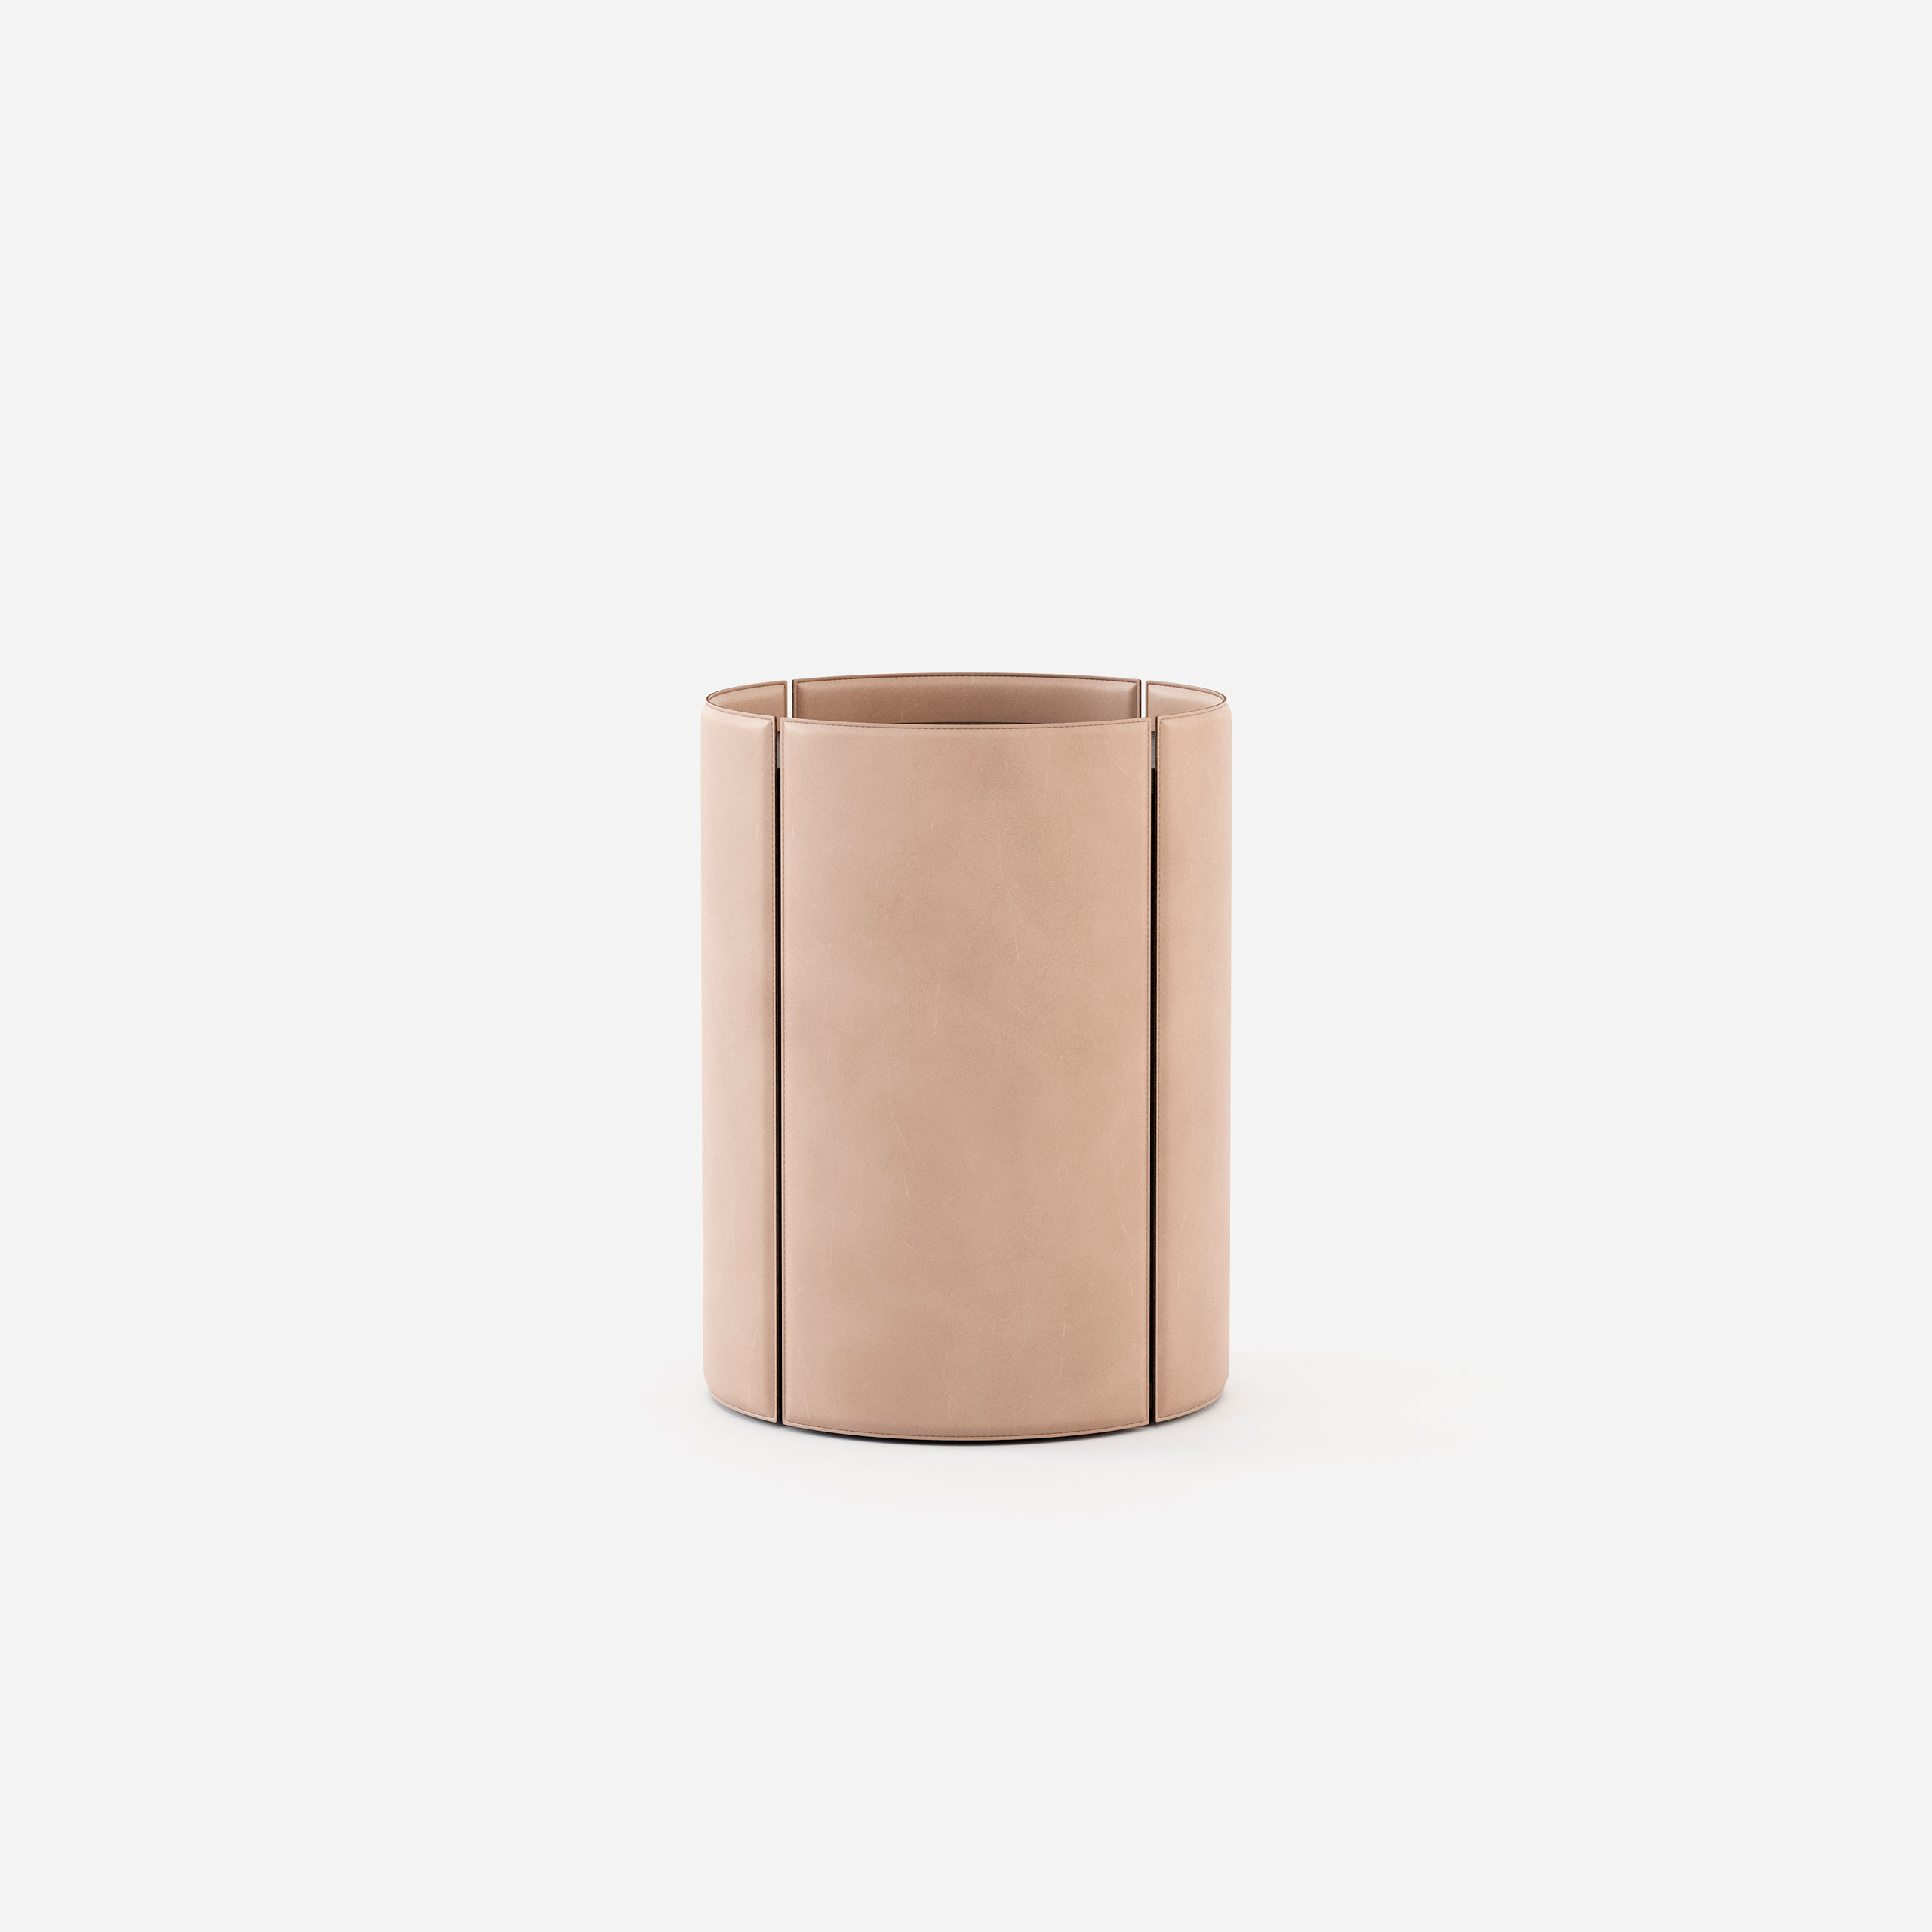 mano-side-table-natural-leather-new-collection-domkapa